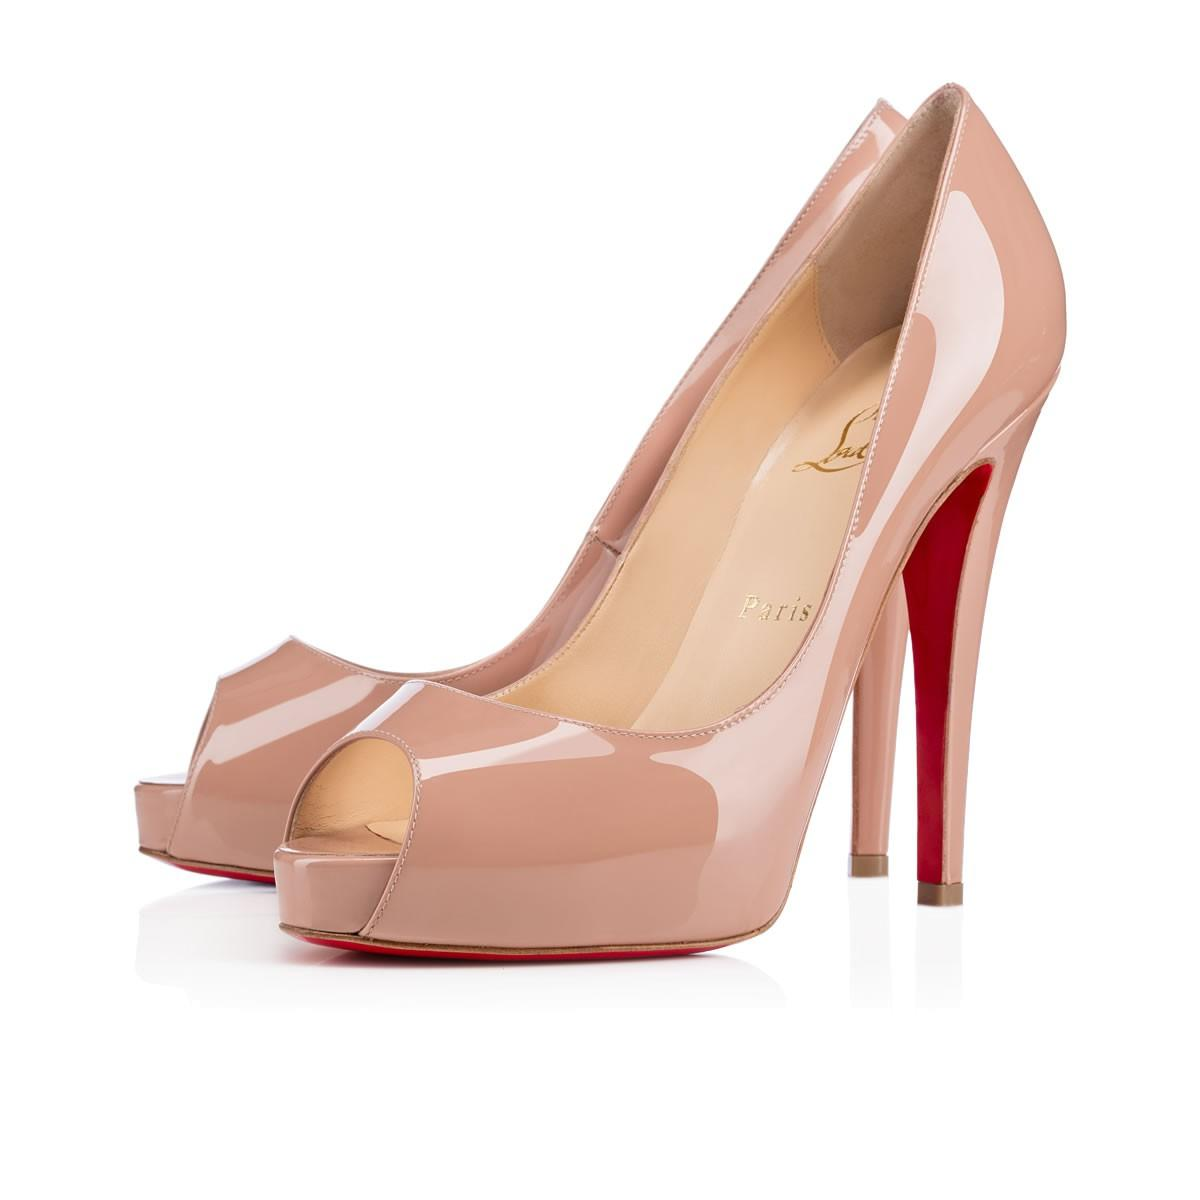 Christian Louboutin New Very Prive New Very Prive Louboutin Size 38 Nude  Pumps